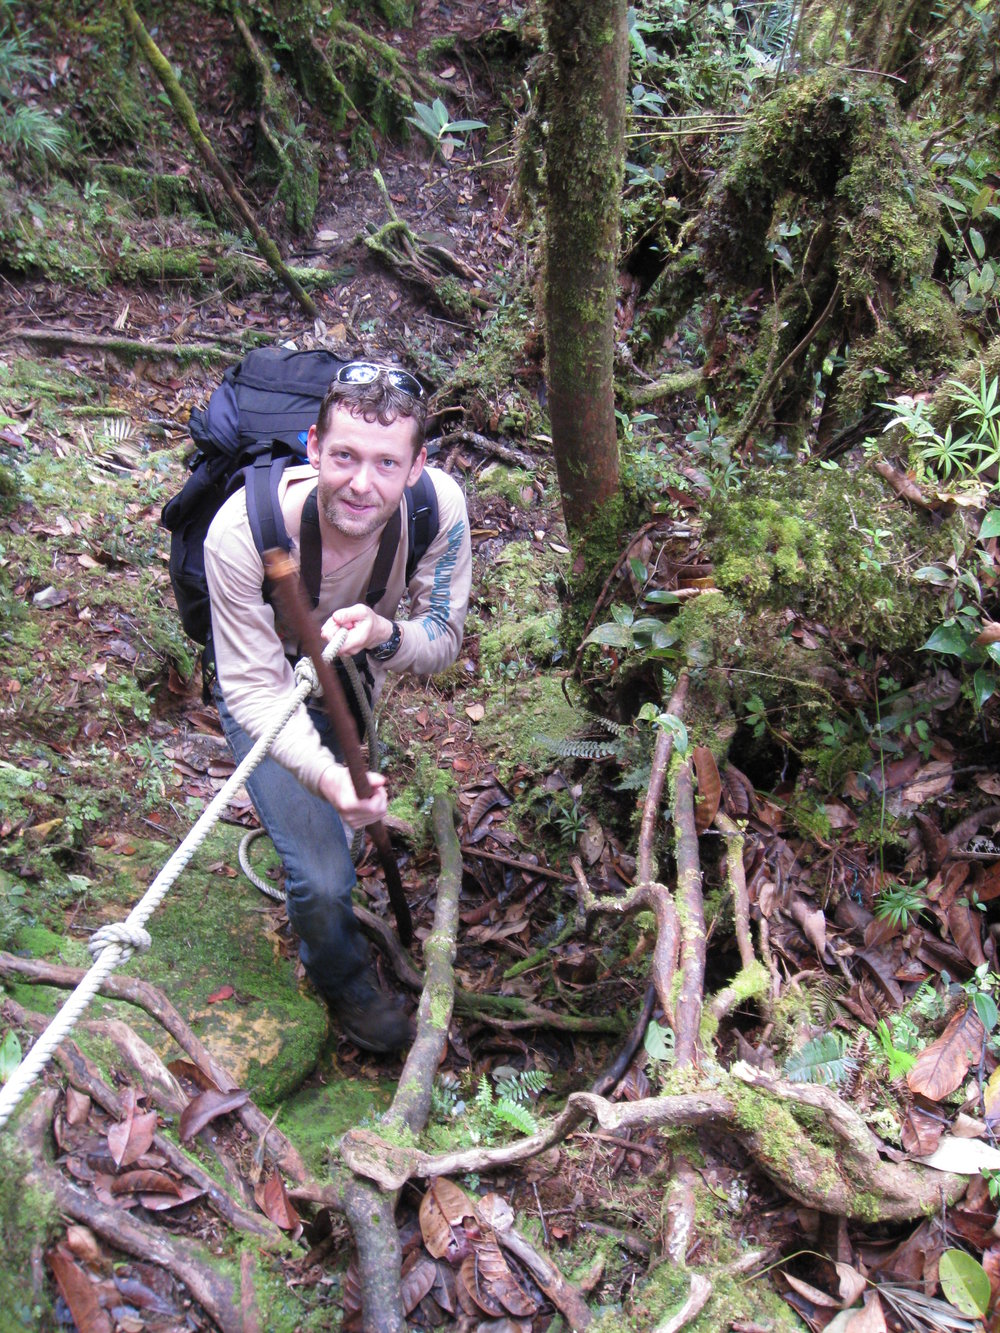 Paul van Els ascending Mt. Mulu in Malaysian Borneo on an ornithological expedition.